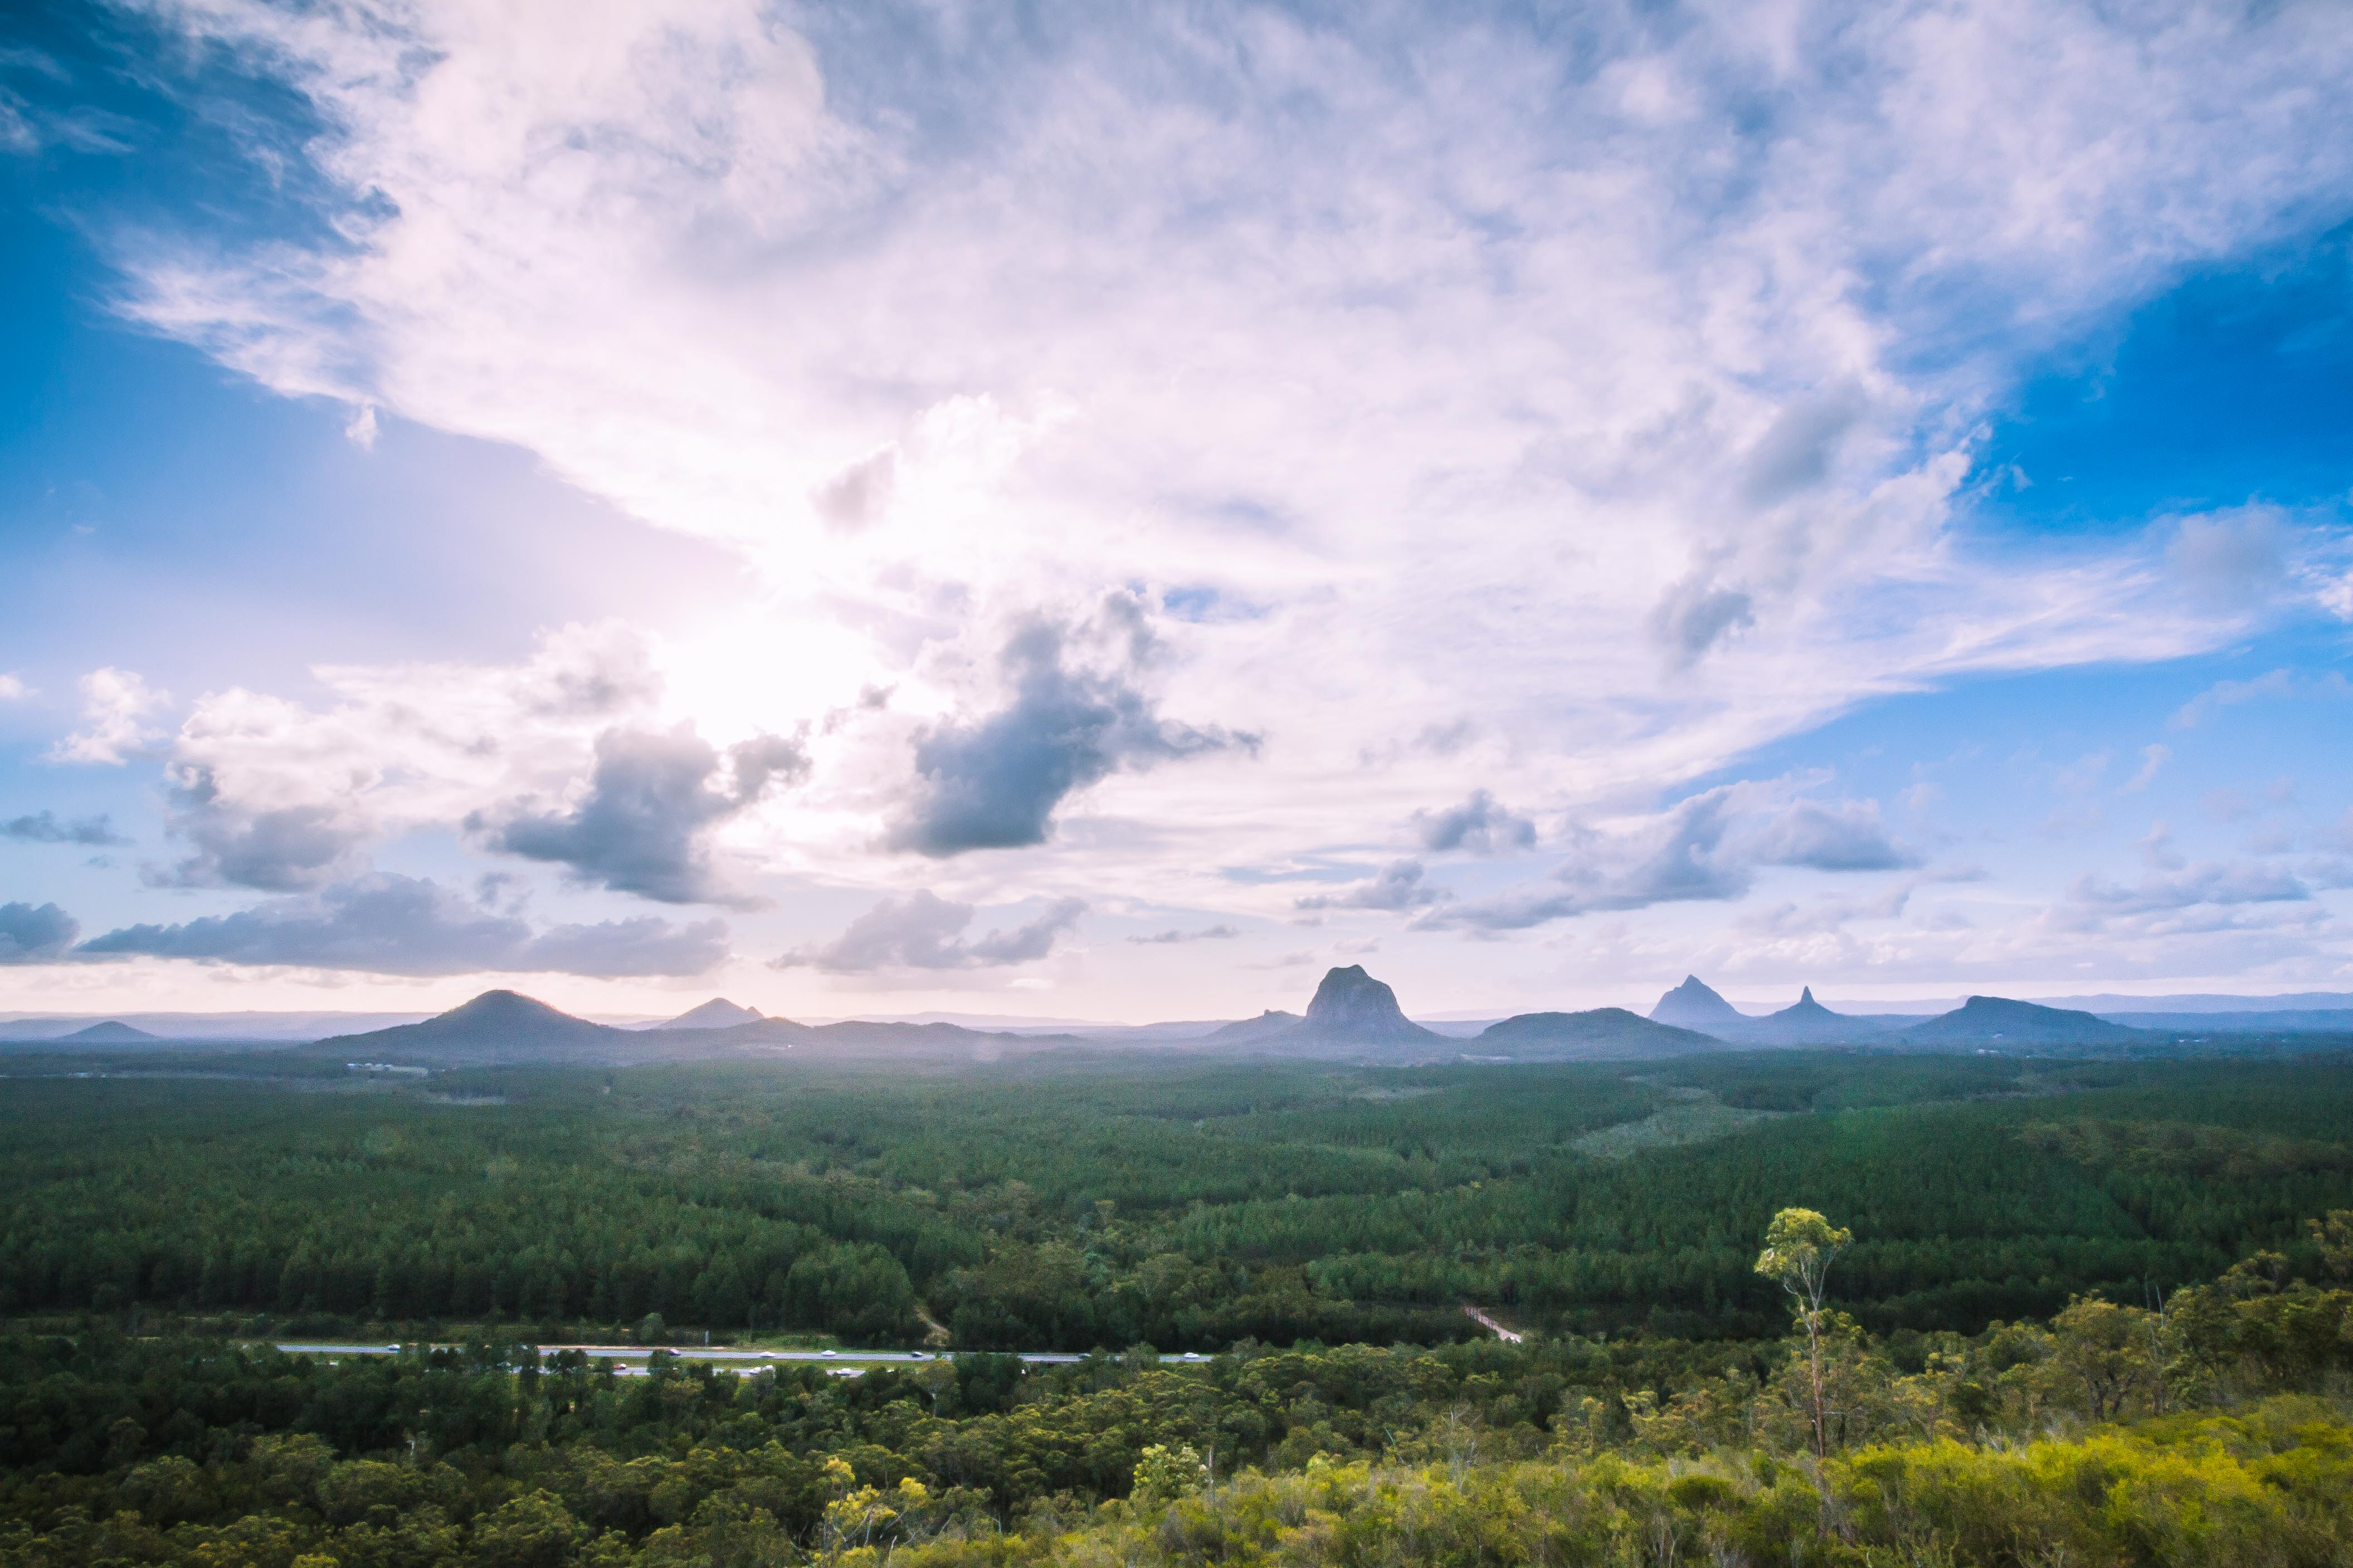 Tips to photograph the Glasshouse Mountains